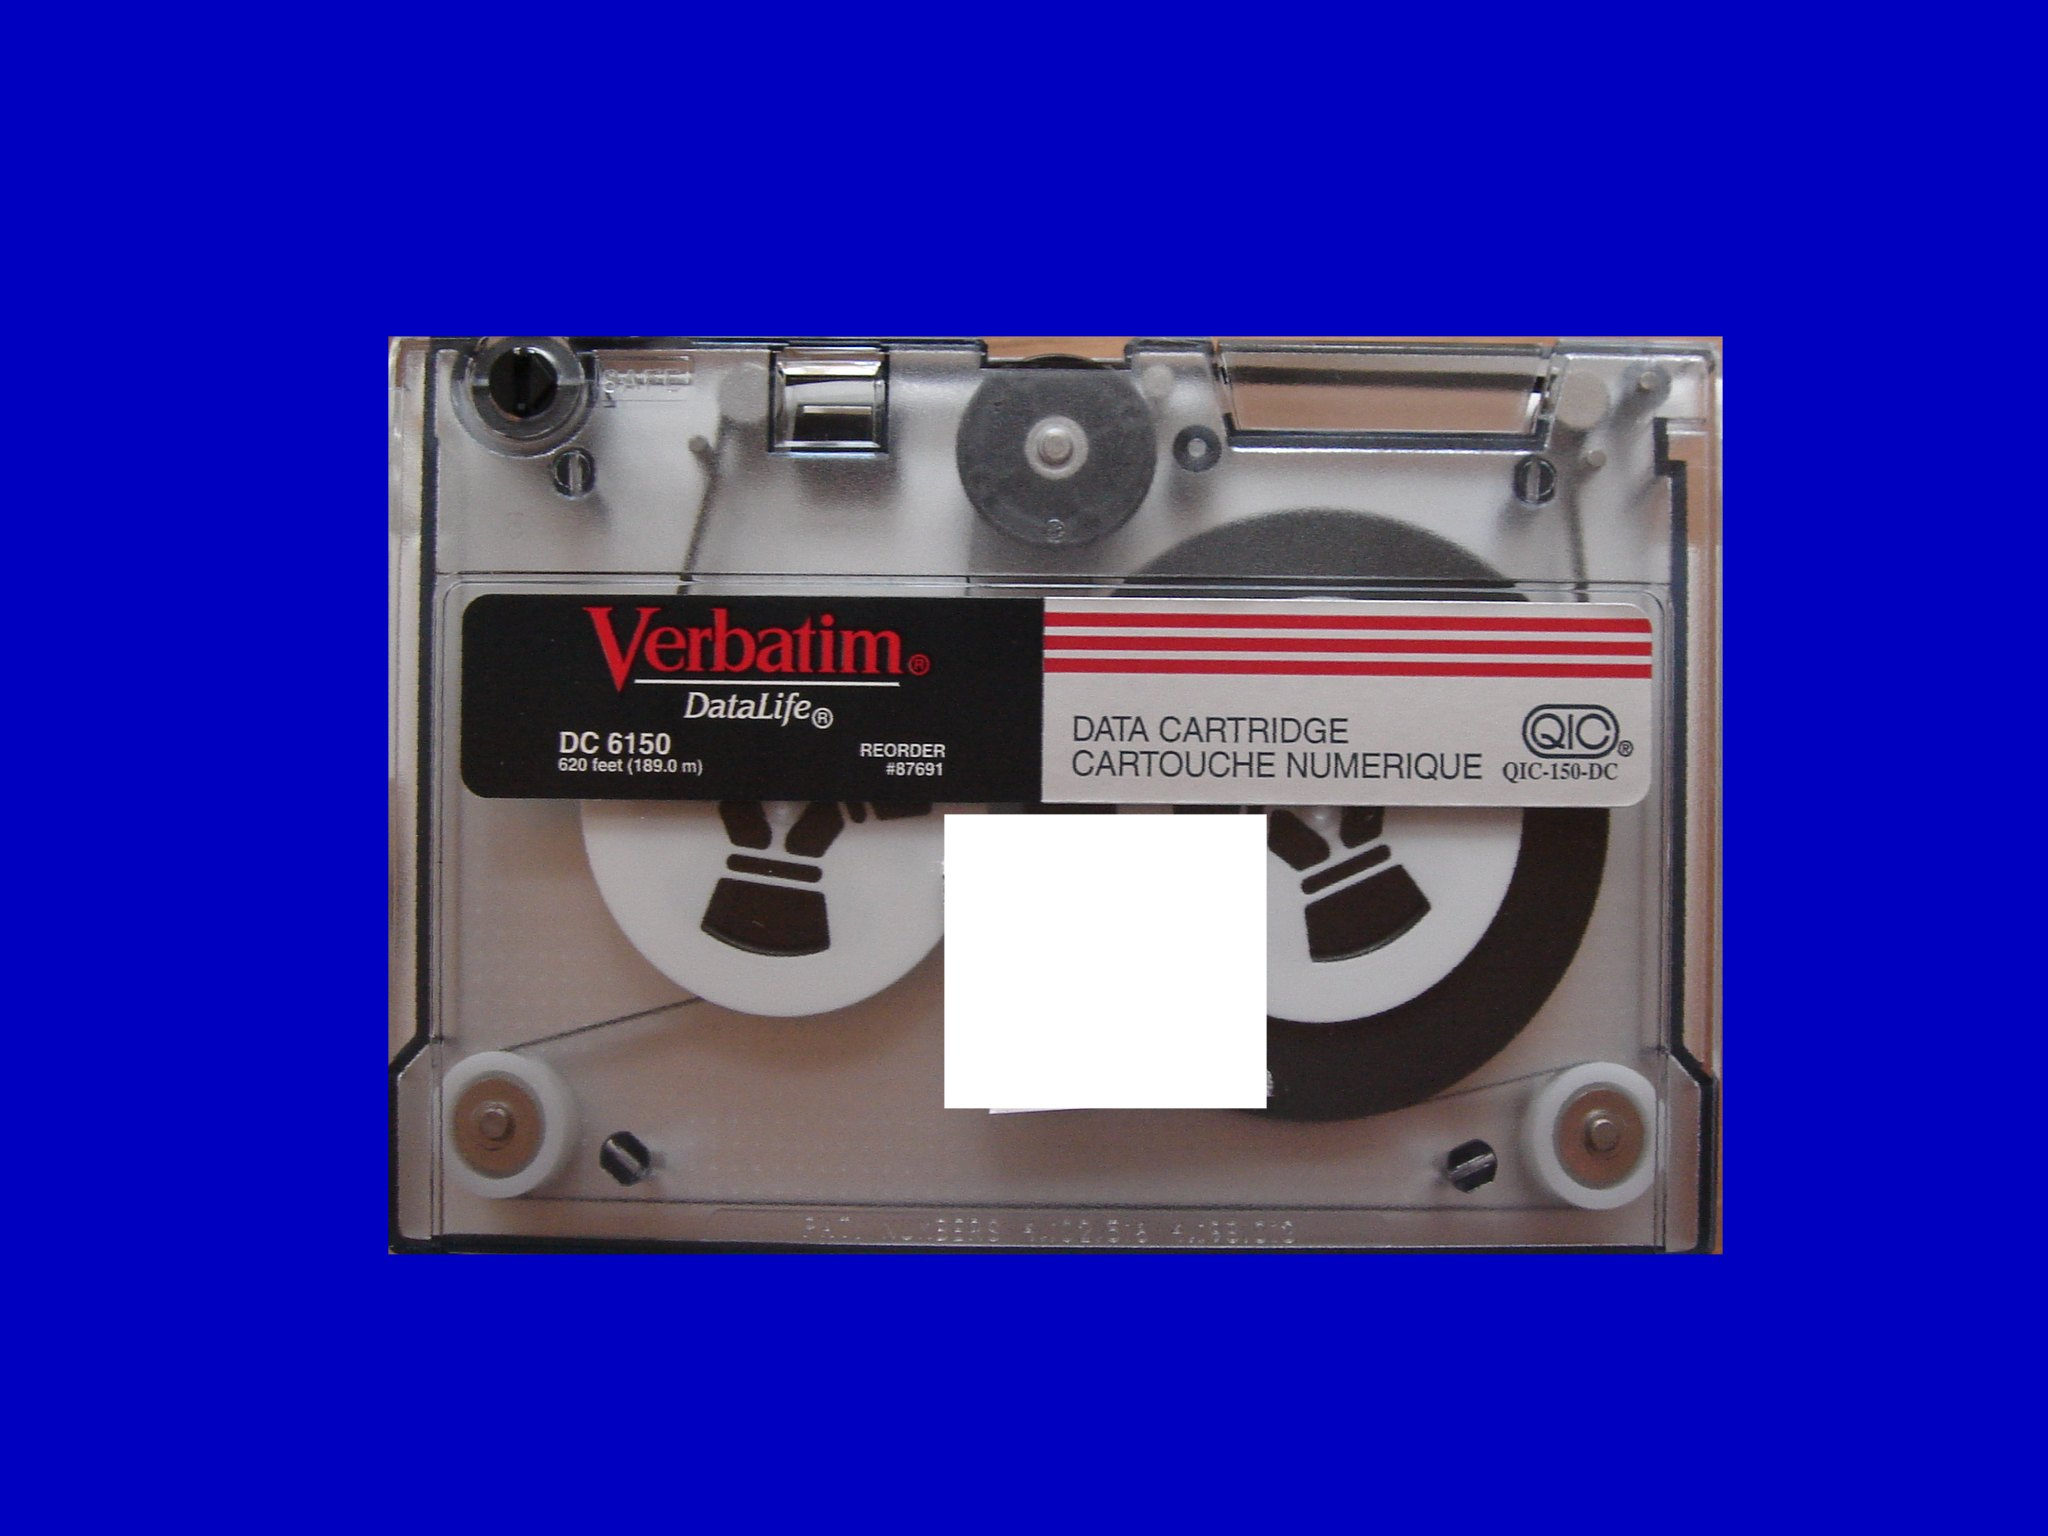 An old 5.25 inch tape cartridge by Verbatim shown against a blue background. This tape was used in Sun Sparc stations and AIX computers. We can dump and restore tar archives from the tpaes to USB, hard drive, CD, or DVD.